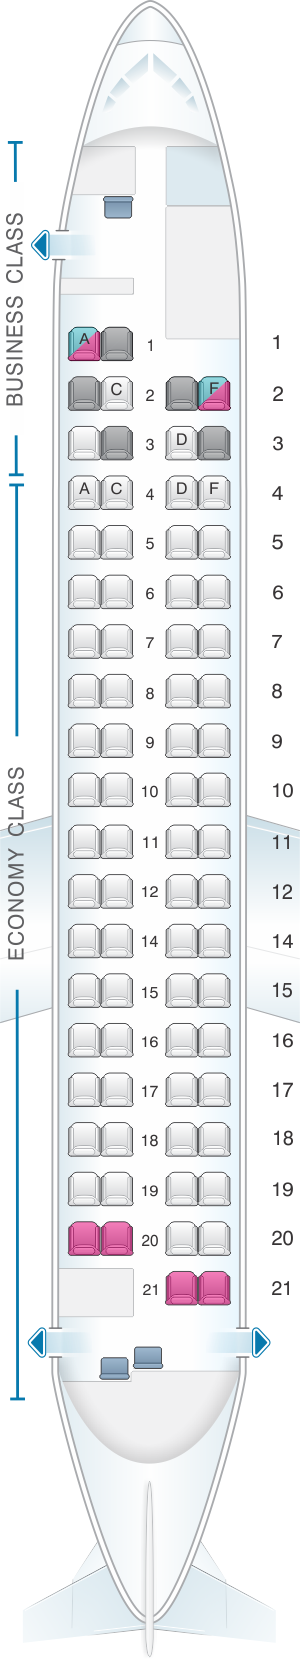 Seat map for Austrian Airlines Bombardier Q400